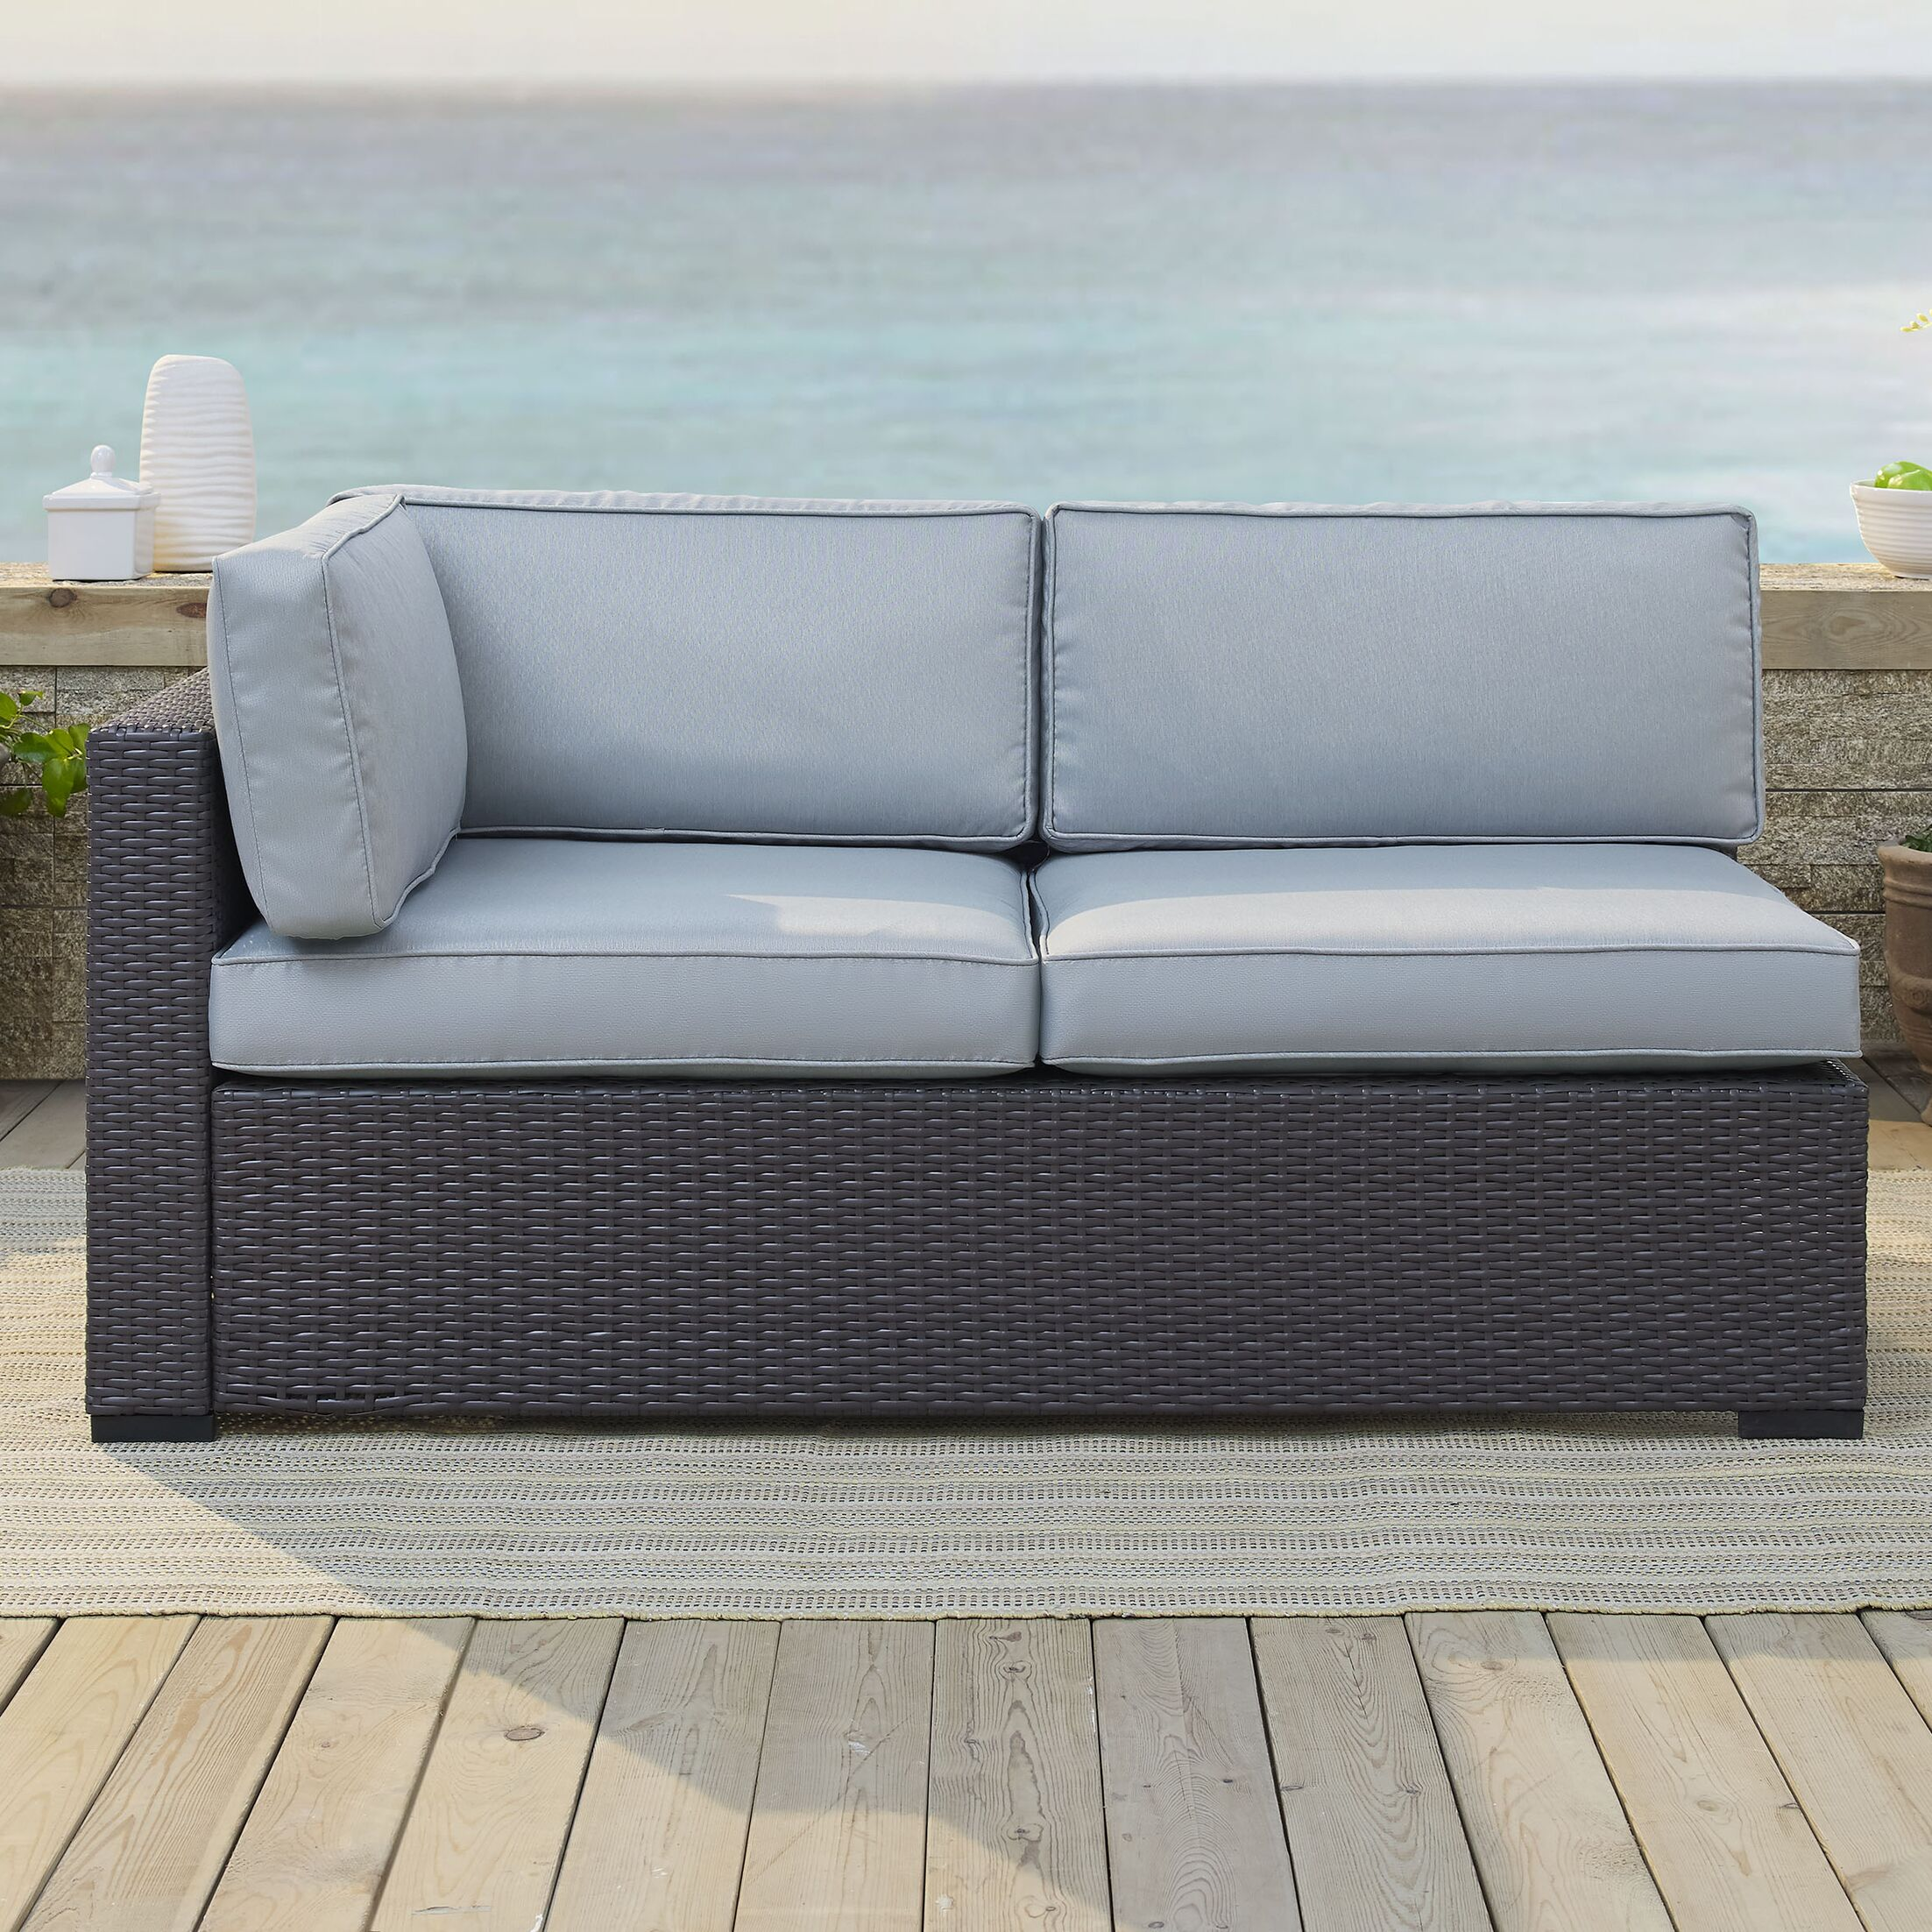 Dinah Loveseat with Cushions Fabric: Mist